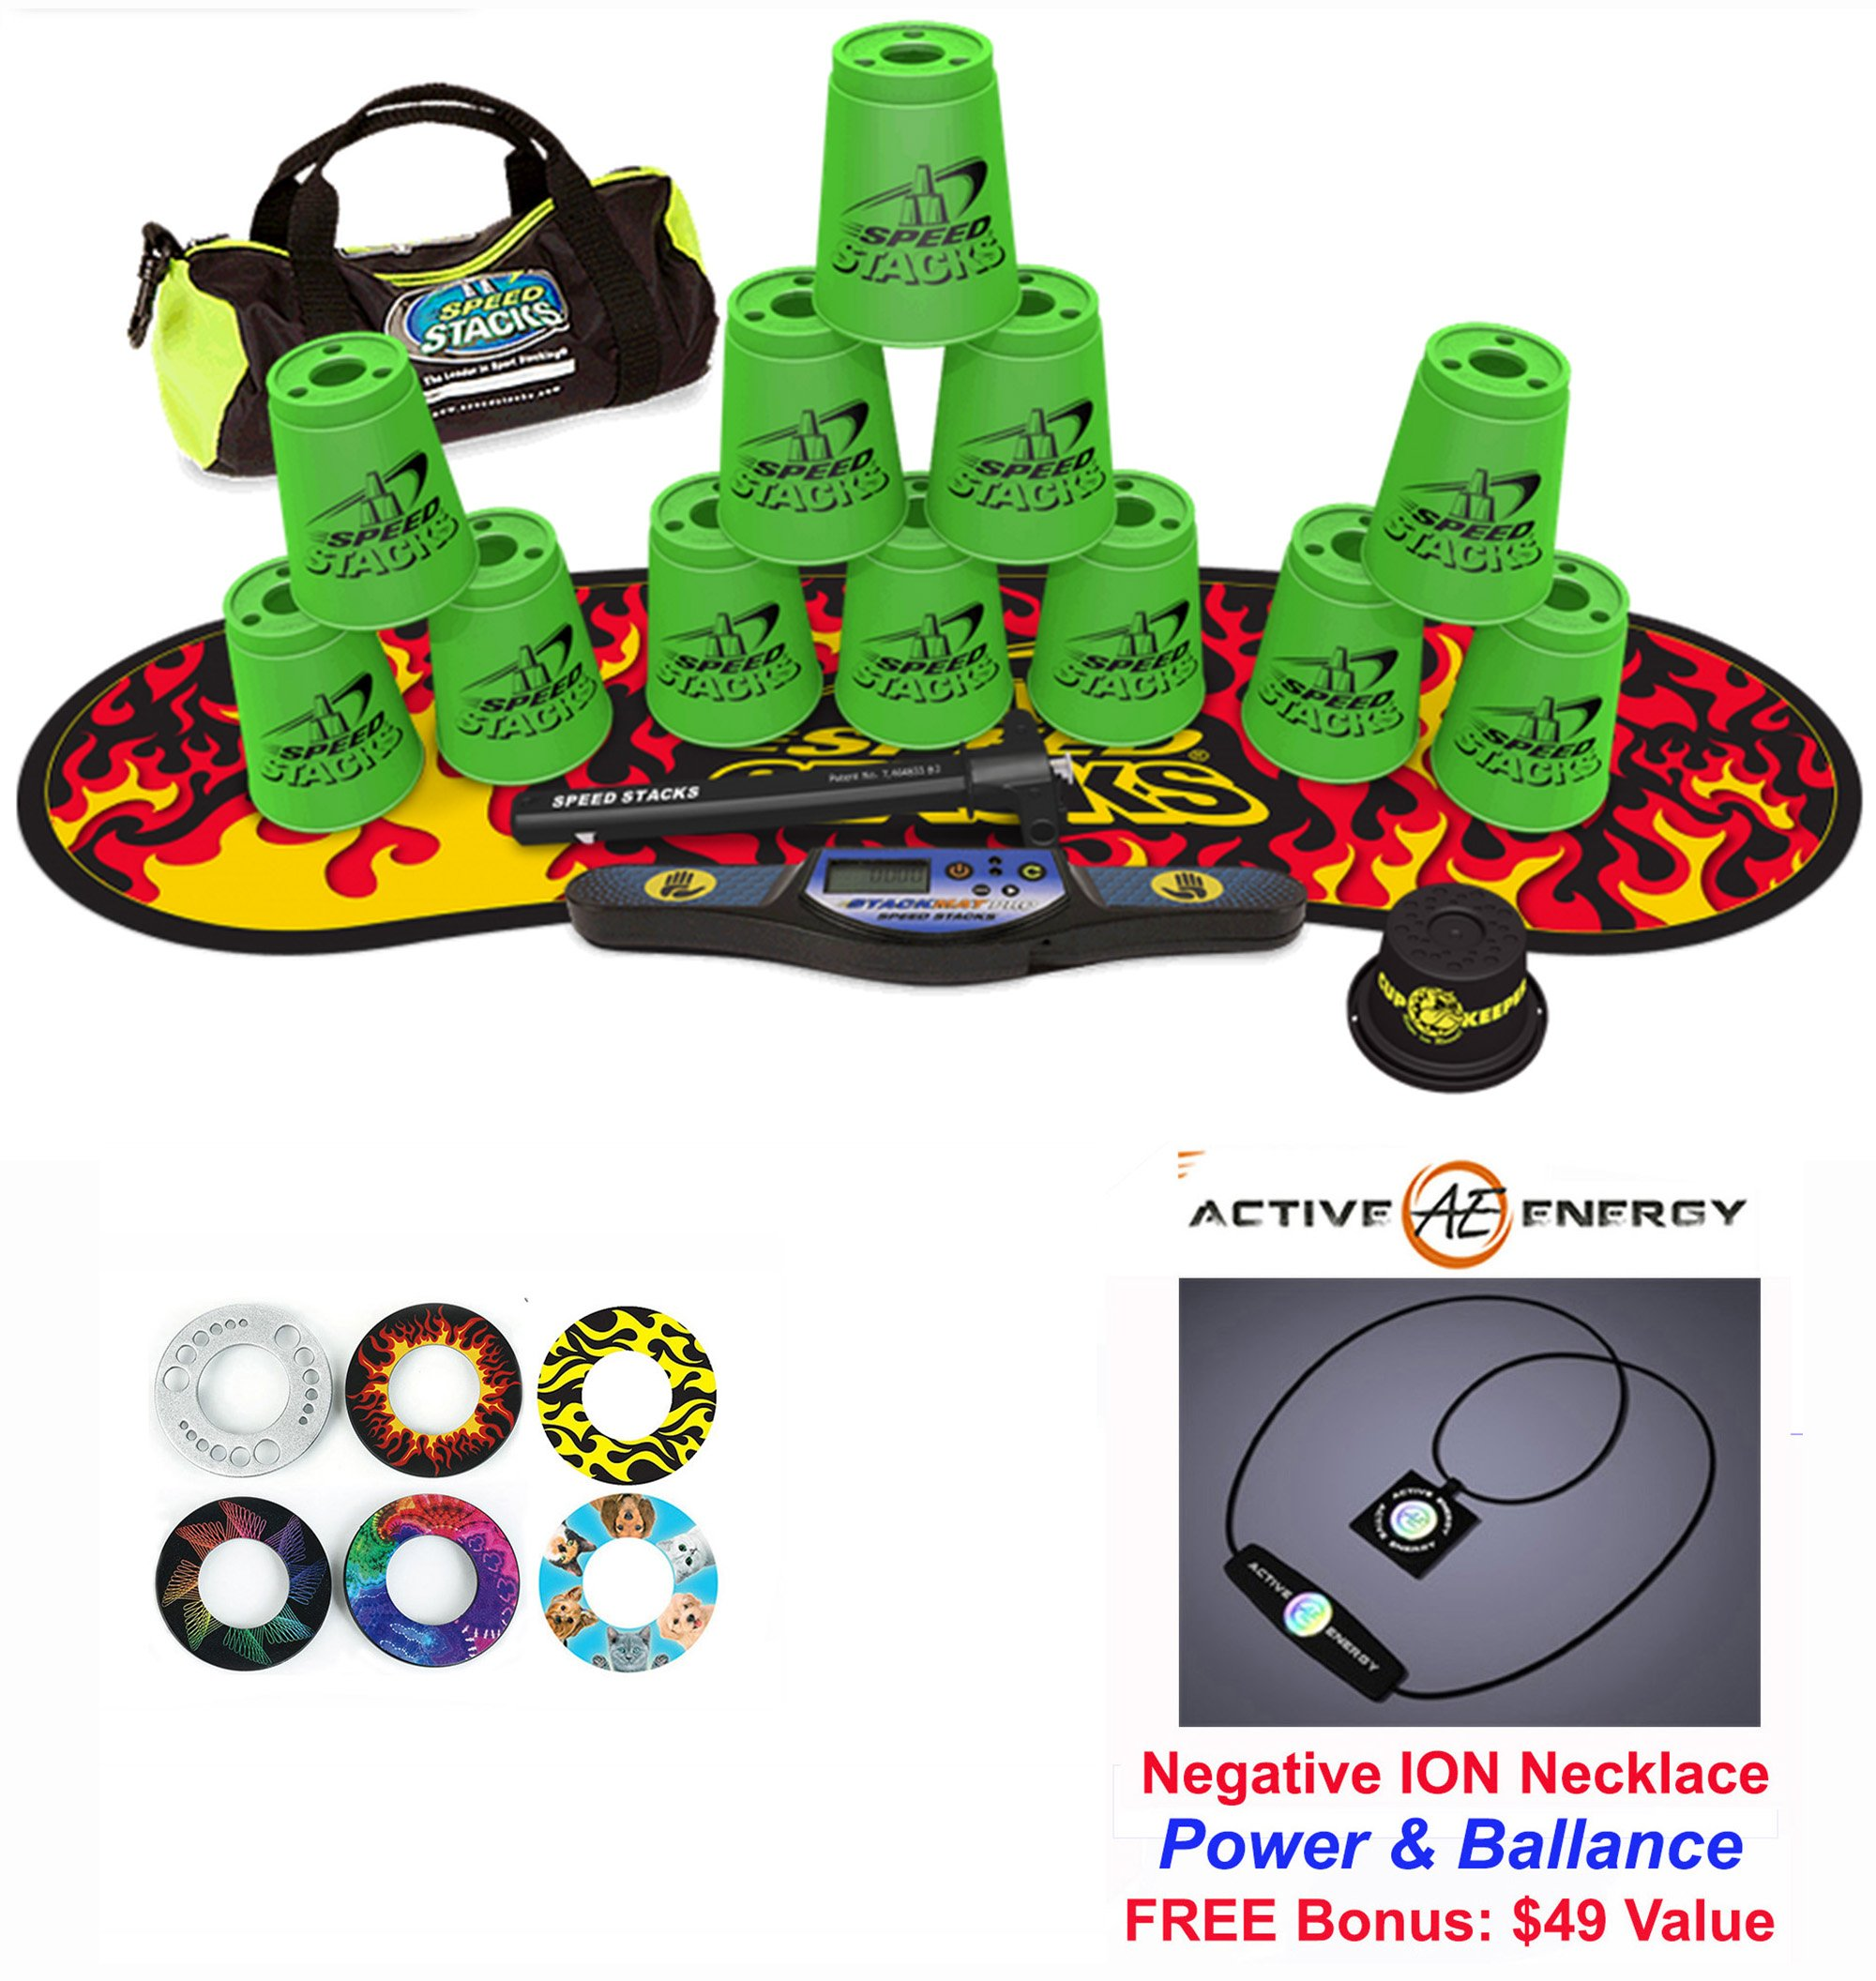 Speed Stacks Custom Combo Set - The Works: 12 GREEN 4'' Cups, Cup Keeper, Quick Release Stem, Pro Timer, Gen 3 Premium Black Flame Mat, 6 Snap Tops, Gear Bag + FREE: Active Energy Power Necklace $49